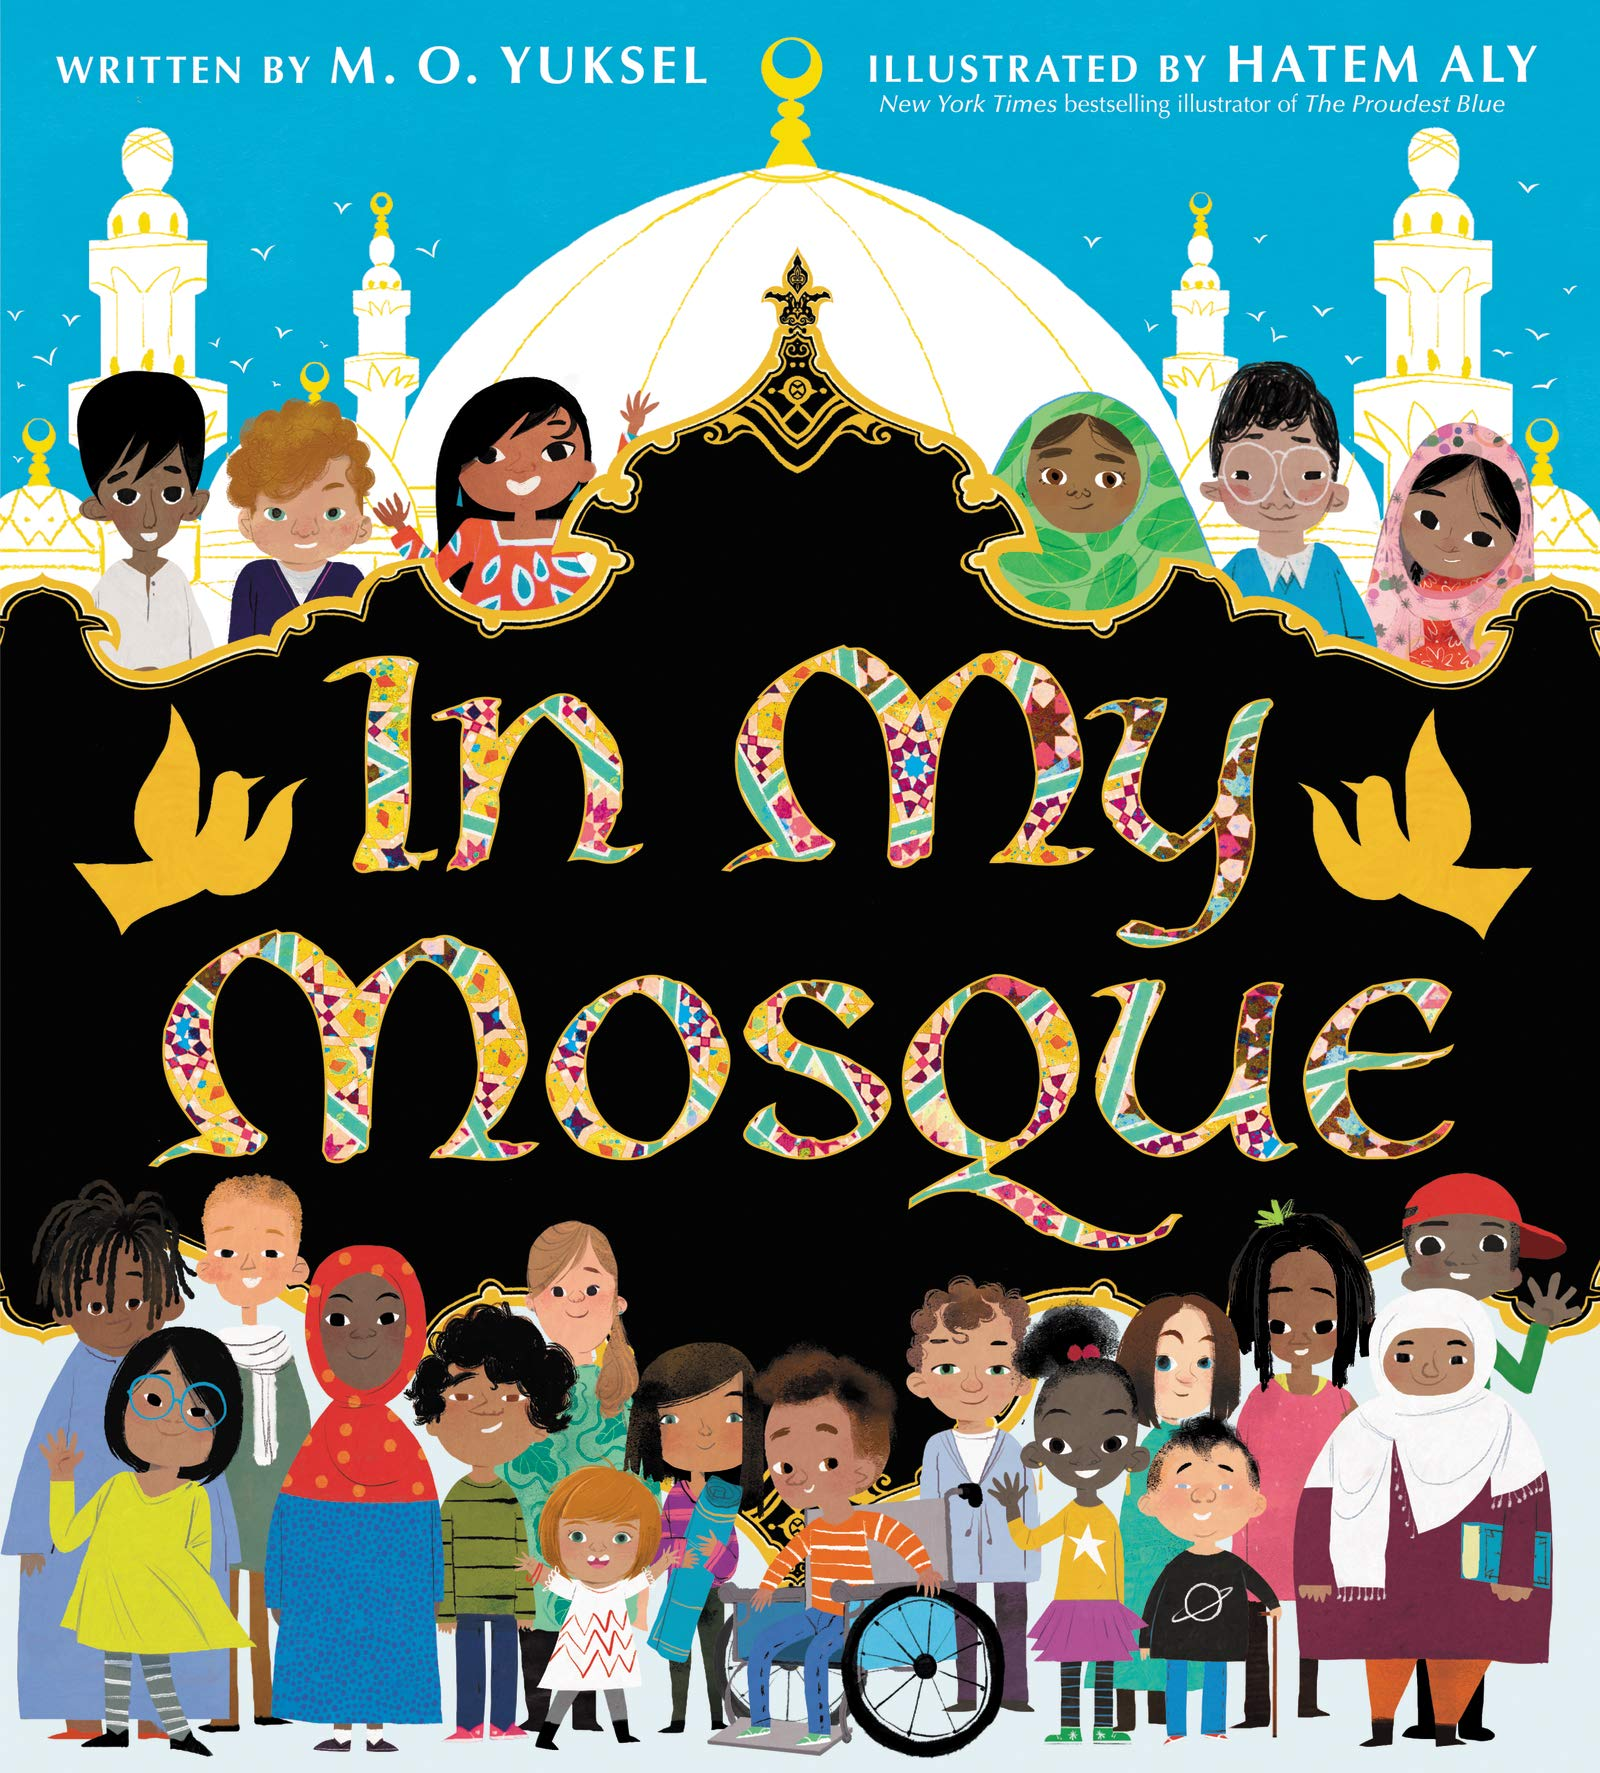 Amazon.com: In My Mosque (9780062978707): Yuksel, M. O., Aly, Hatem: Books